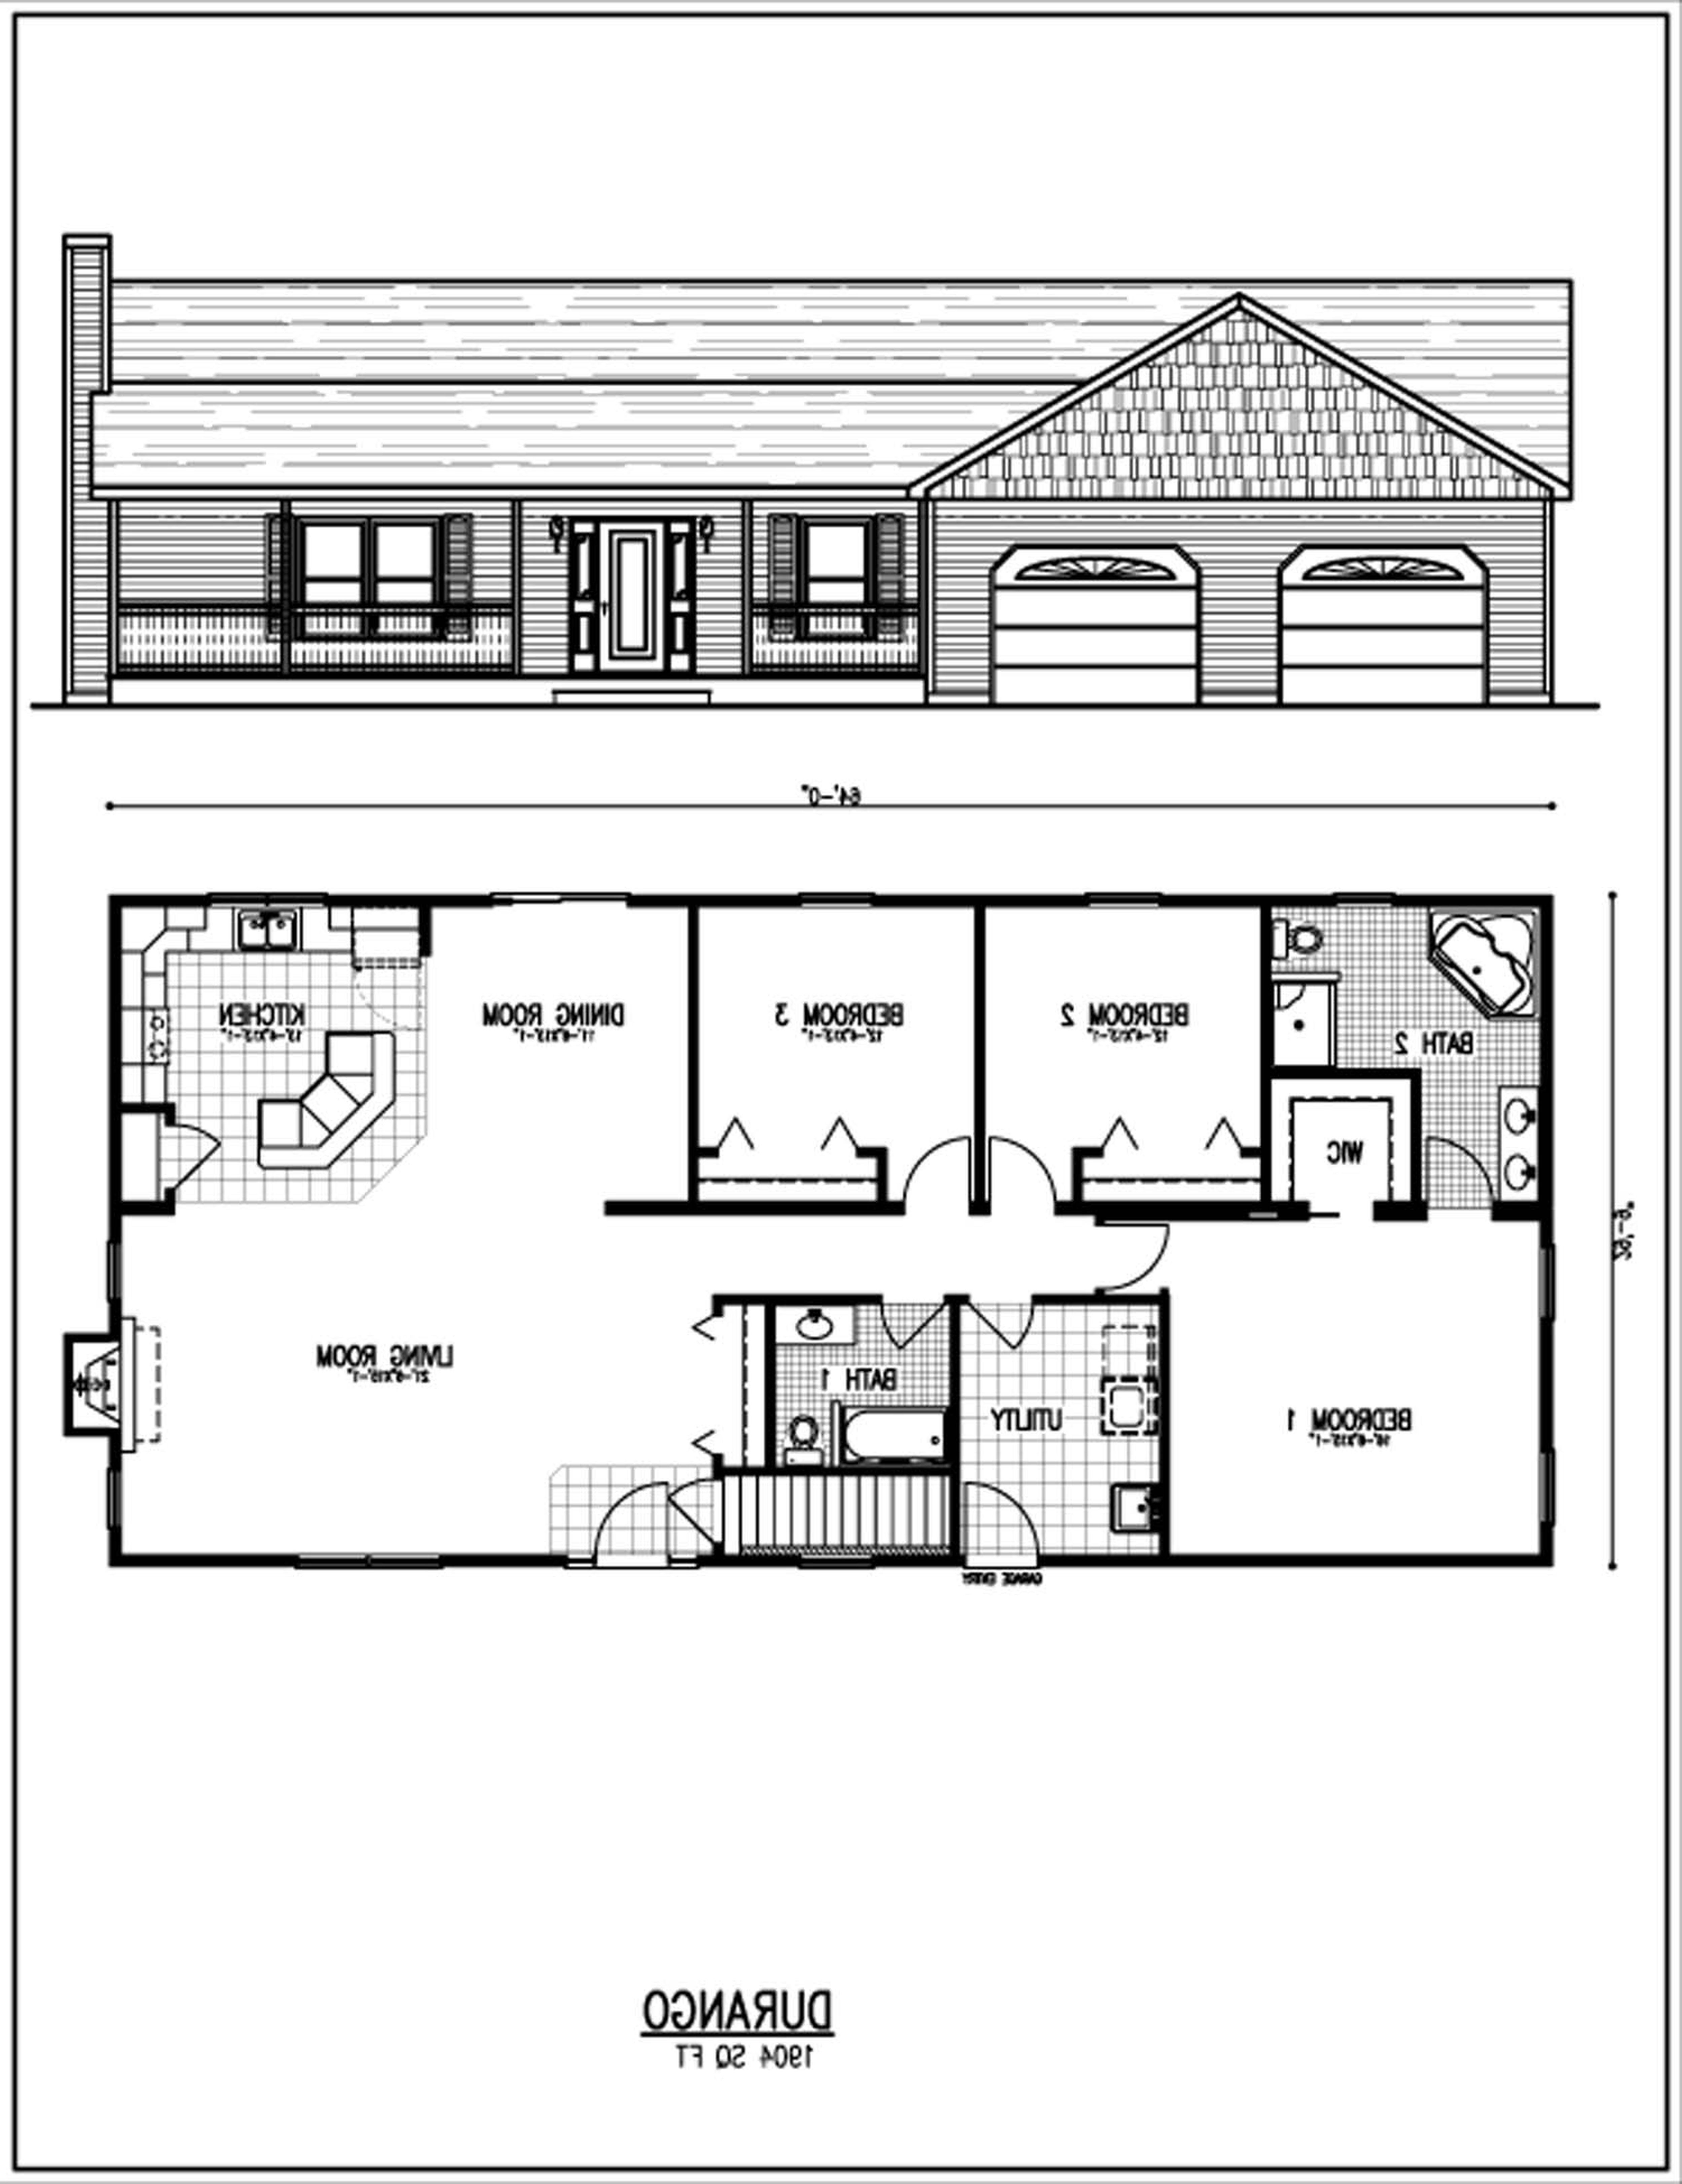 home decor plan bedroom ranch house floor plans full hdmercial as wells as excerpt interior images floor plans for a house